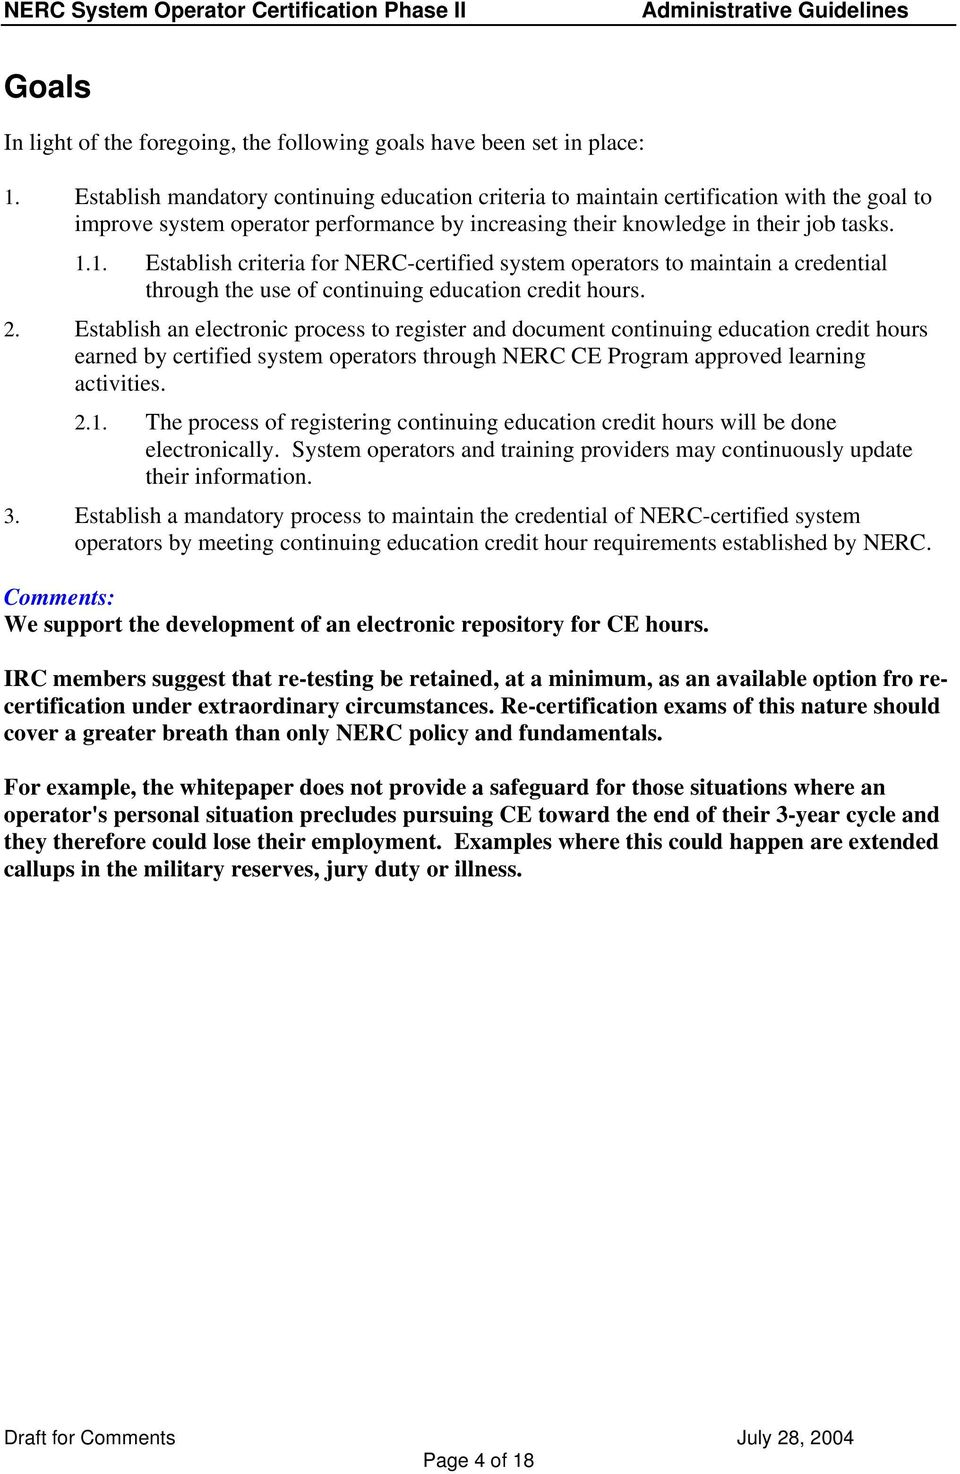 Establish criteria for NERC-certified system operators to maintain a  credential through the